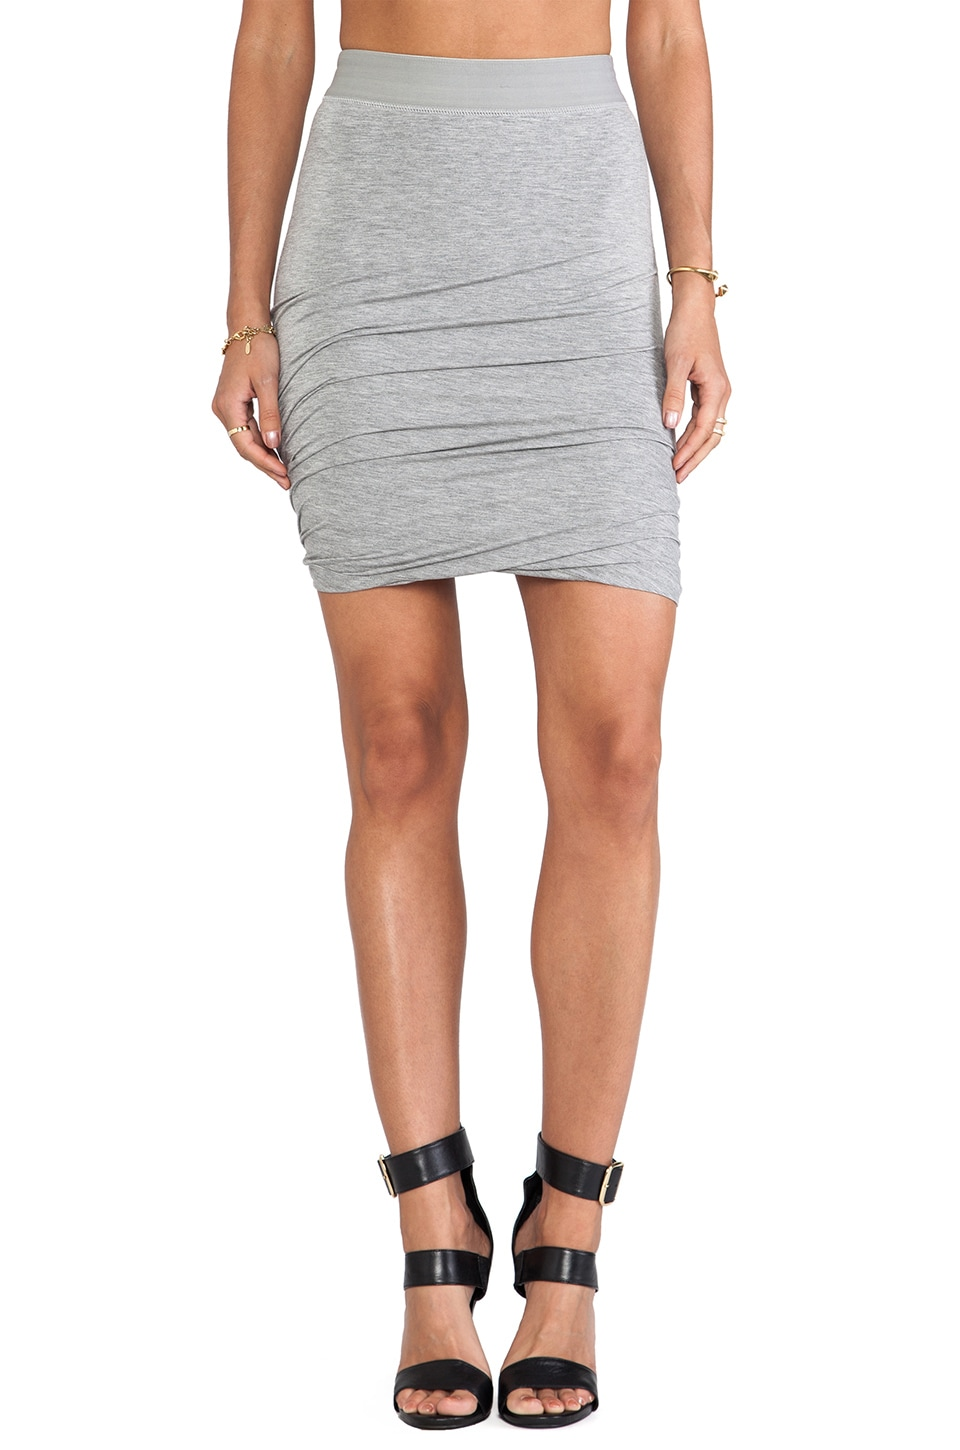 L'AMERICA On A Roll Drape Skirt in Grey Marle